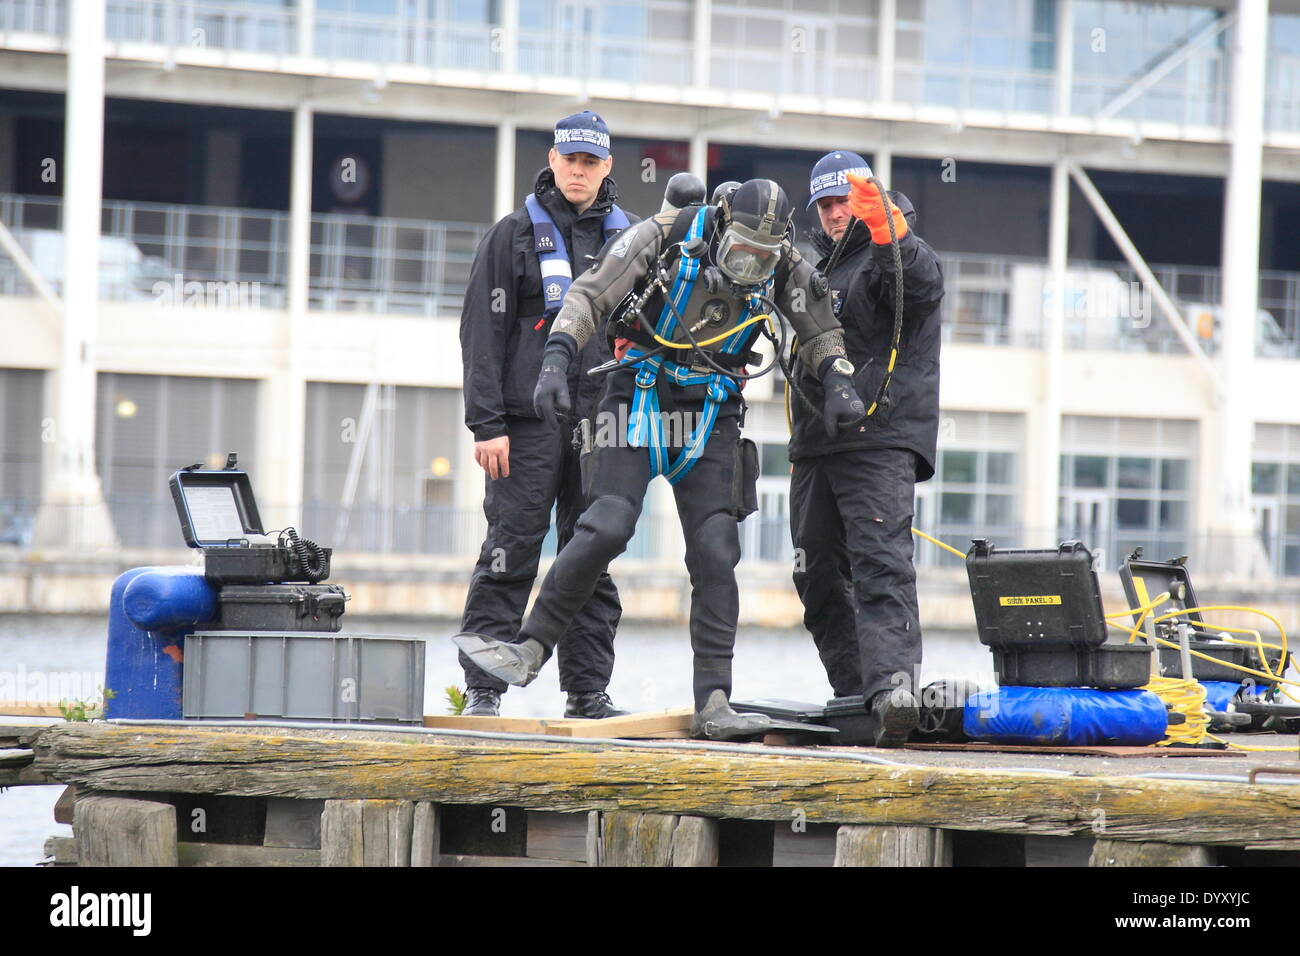 London, UK. Sunday April 27th 2014 Metropolitan Police Marine Unit searches the Royal Victoria Docks for a plane's black boxes as part of the large multi agency exercise being held in East London. The three day exercise sees hundreds of emergency services personnel responding to a simulated plane crash at the Millennium Mills site and adjacent Royal Victoria Docks. Credit:  HOT SHOTS/Alamy Live News - Stock Image